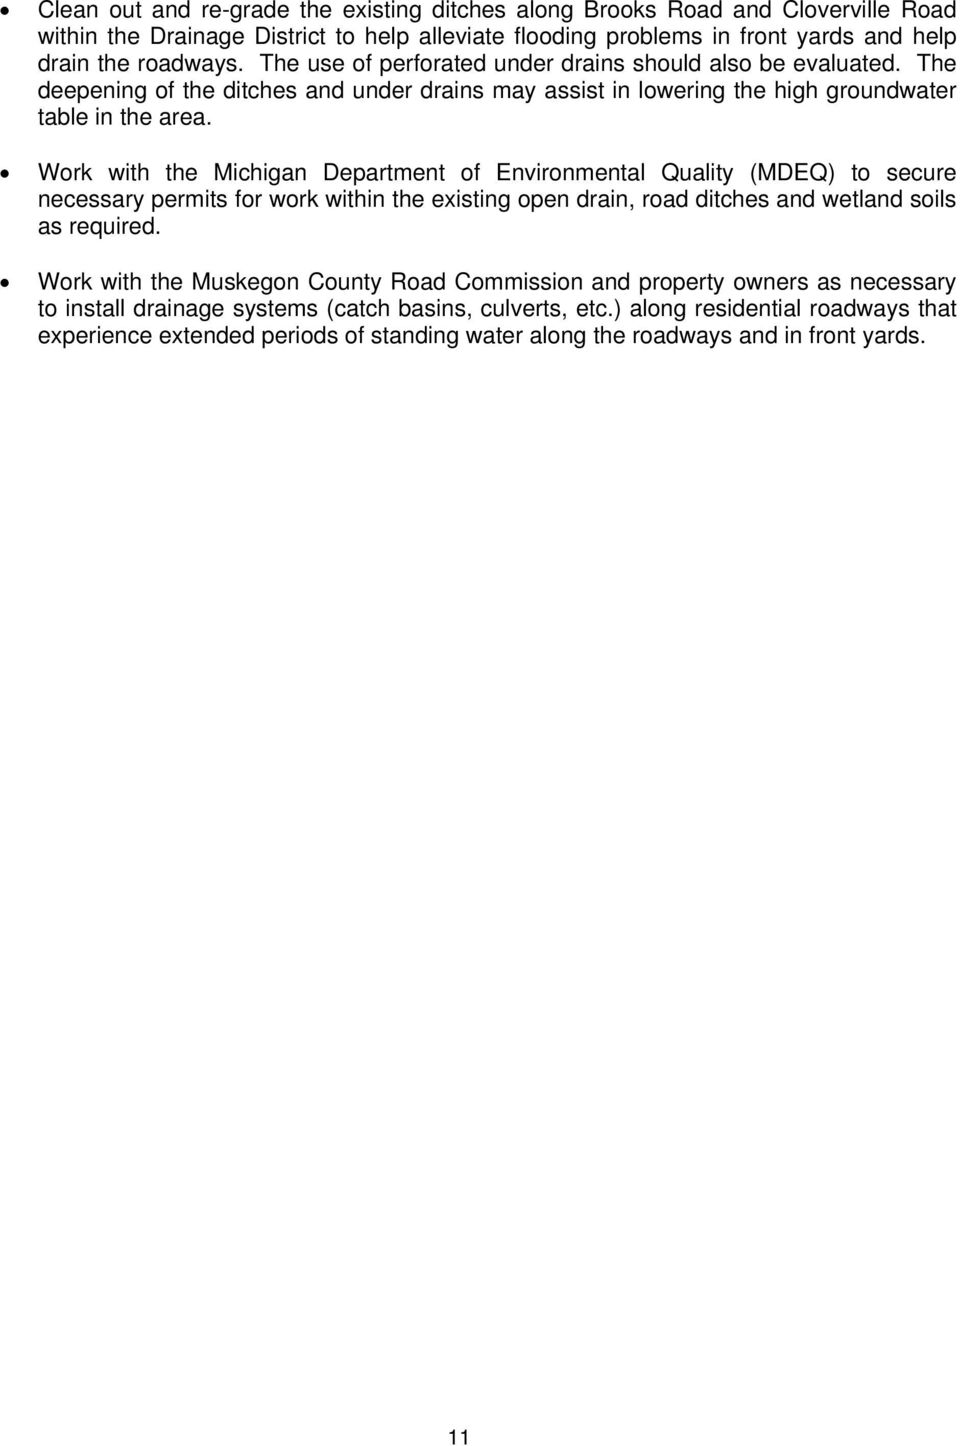 Work with the Michigan Department of Environmental Quality (MDEQ) to secure necessary permits for work within the existing open drain, road ditches and wetland soils as required.